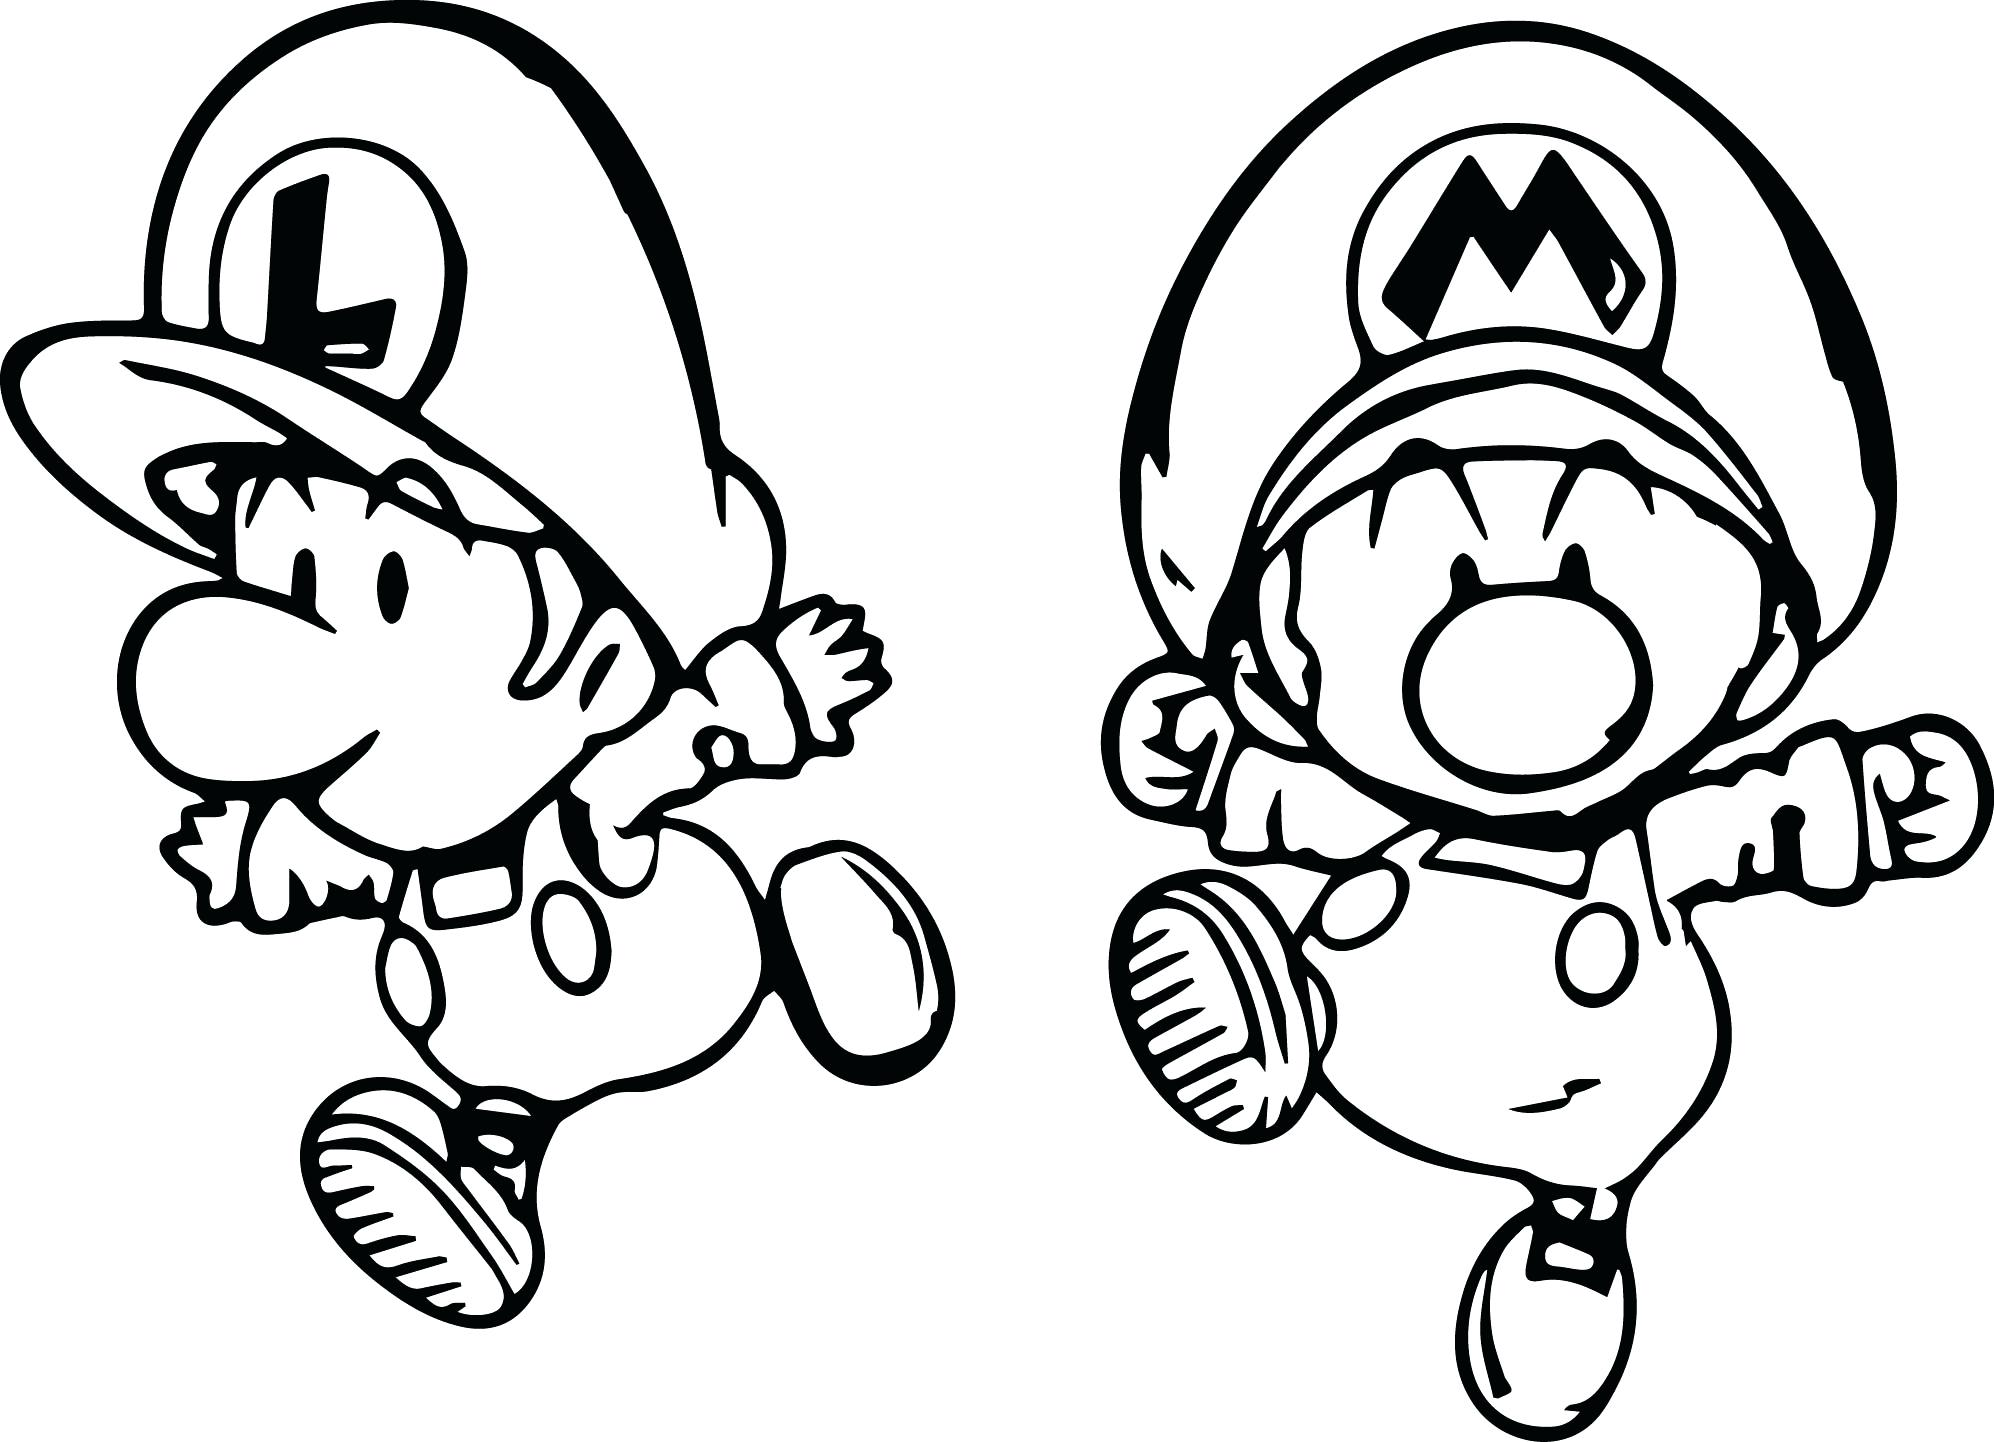 1994x1442 Super And Mini Child Coloring Page Mario Kart Driving Pages Sheet